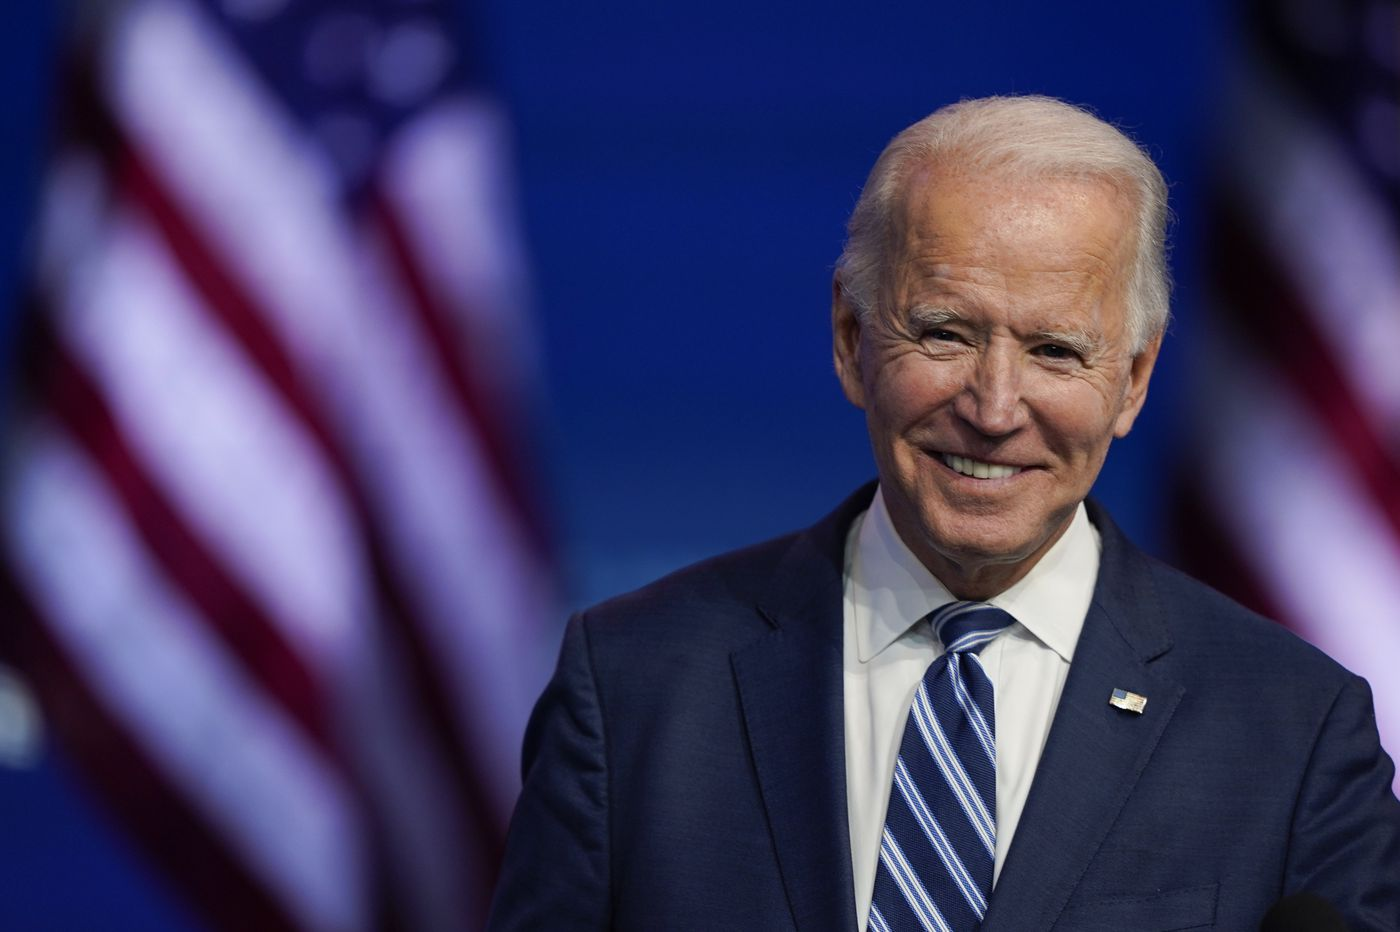 Biden and top Democrats are laying the groundwork for a multibillion-dollar push to boost U.S. broadband